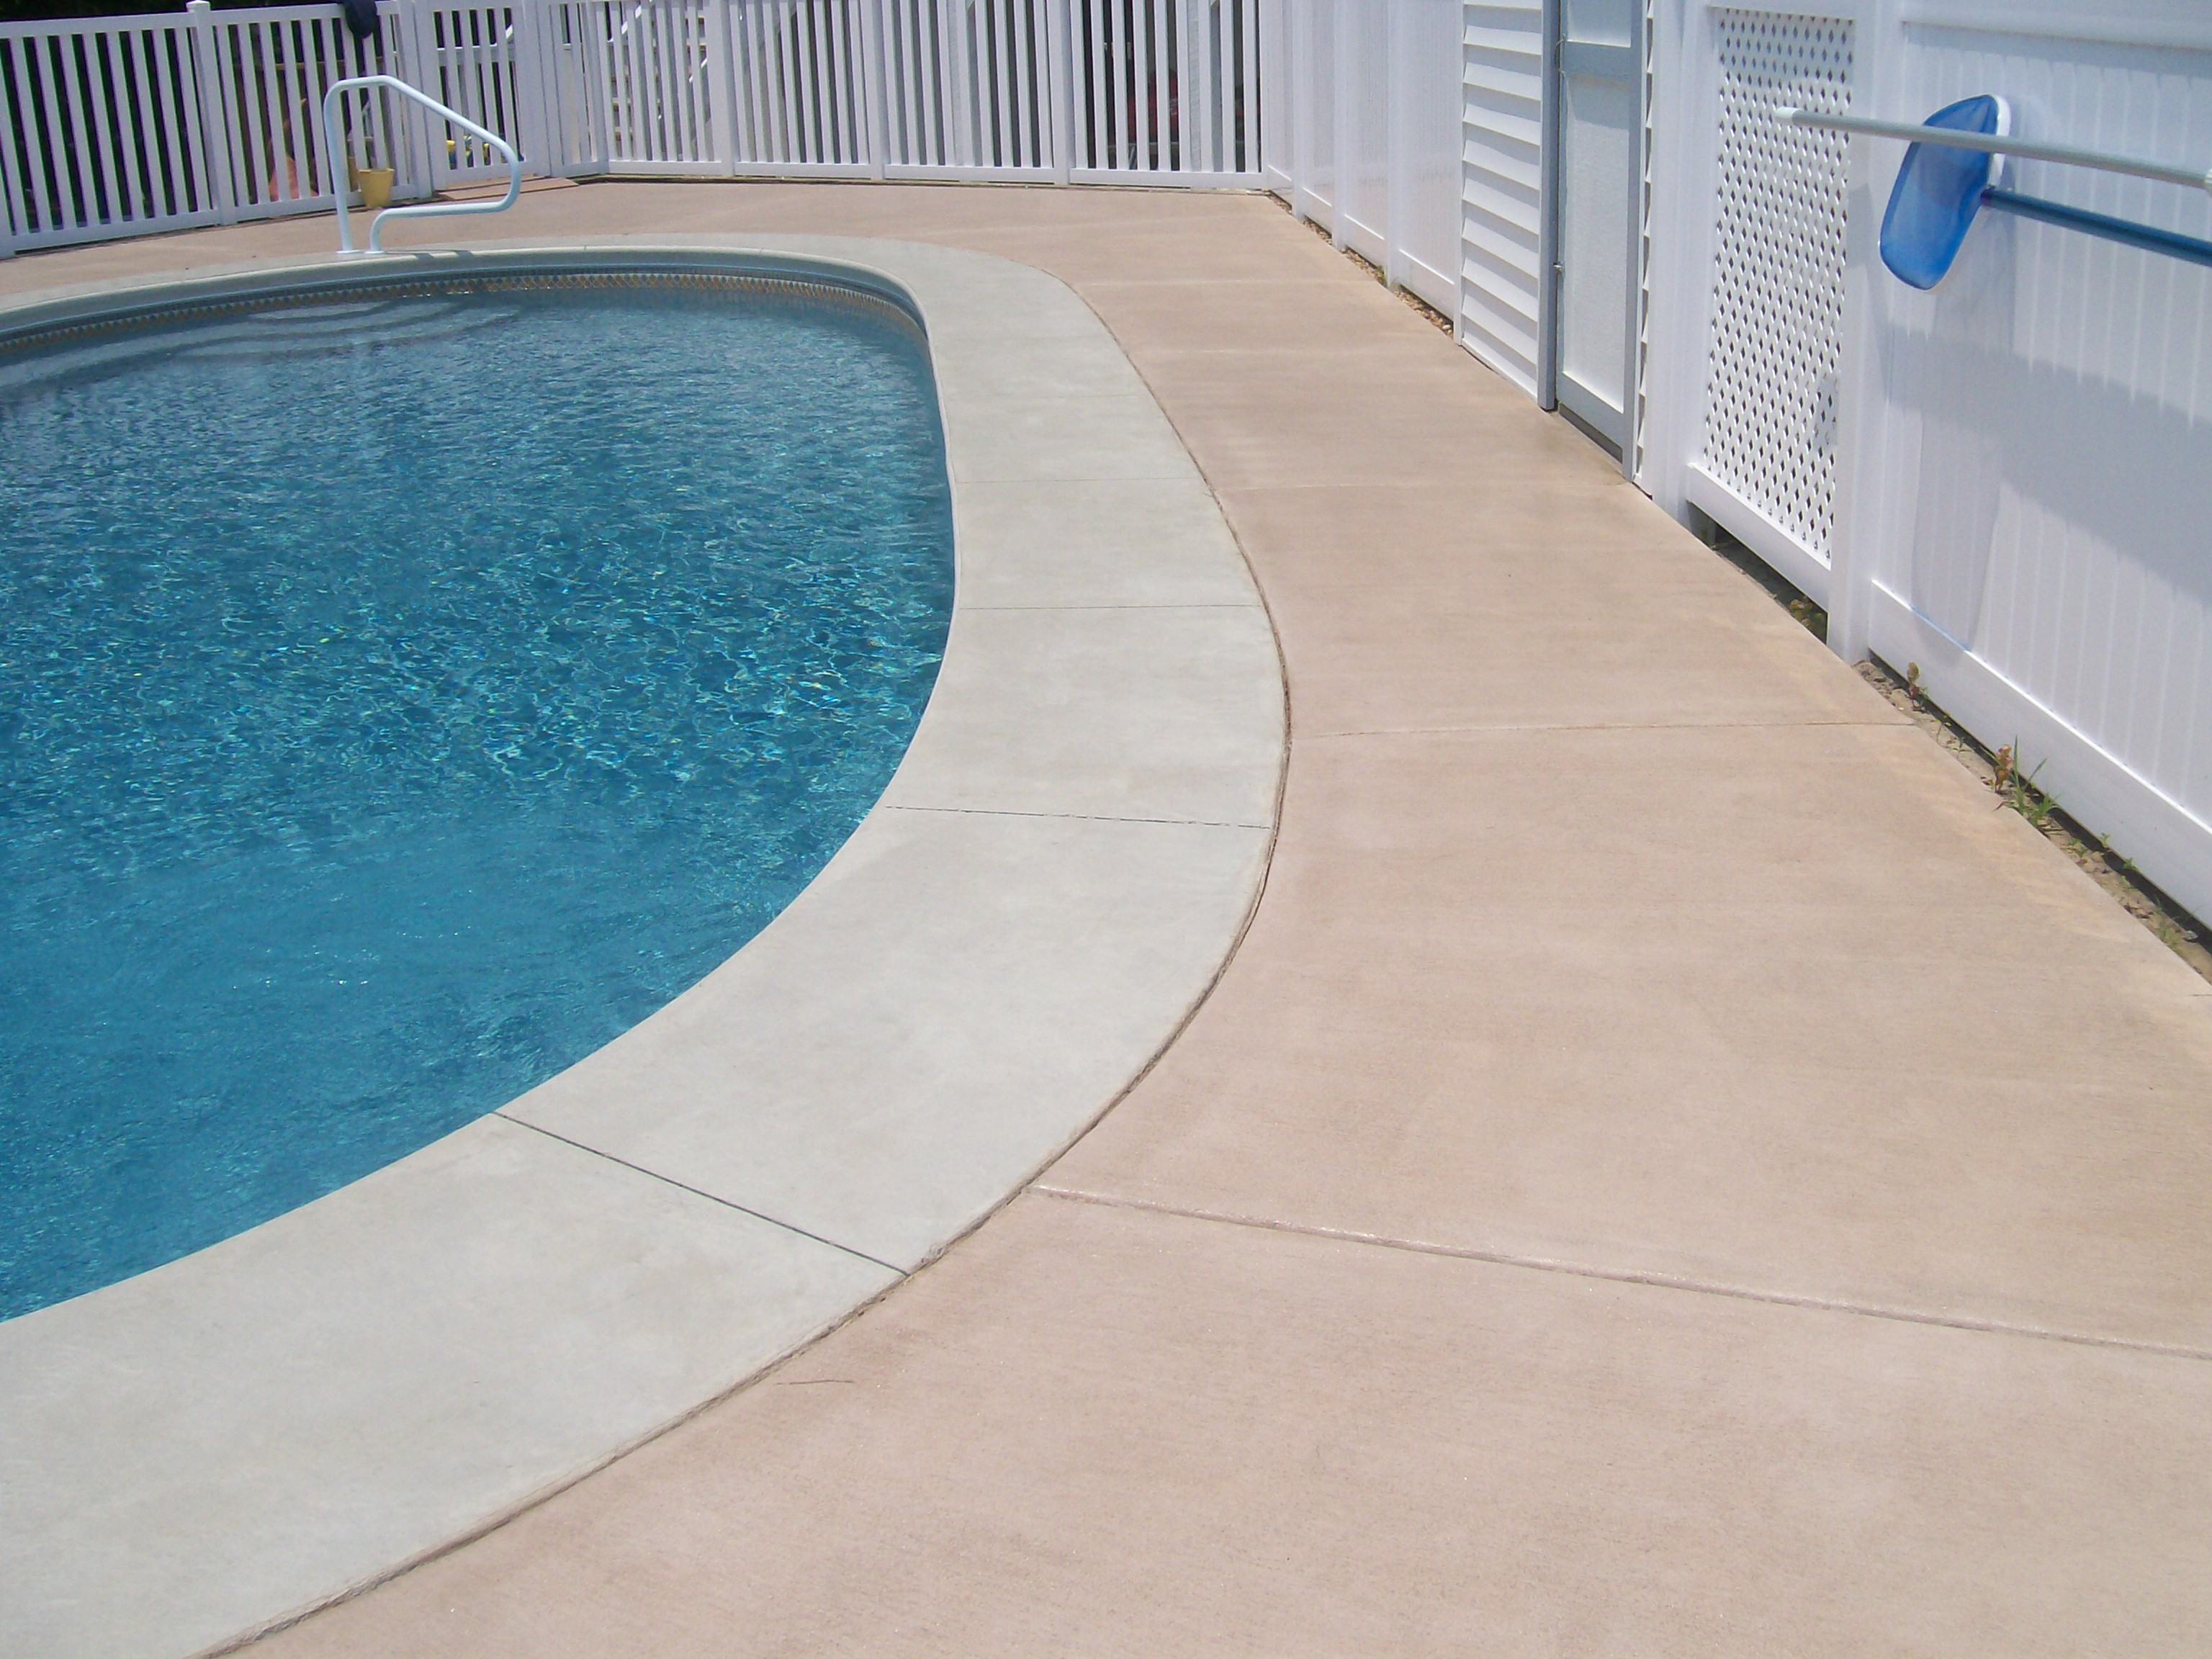 Border Around Pool Heller Concrete Inc. Serving The Outer Banks Of North Carolina